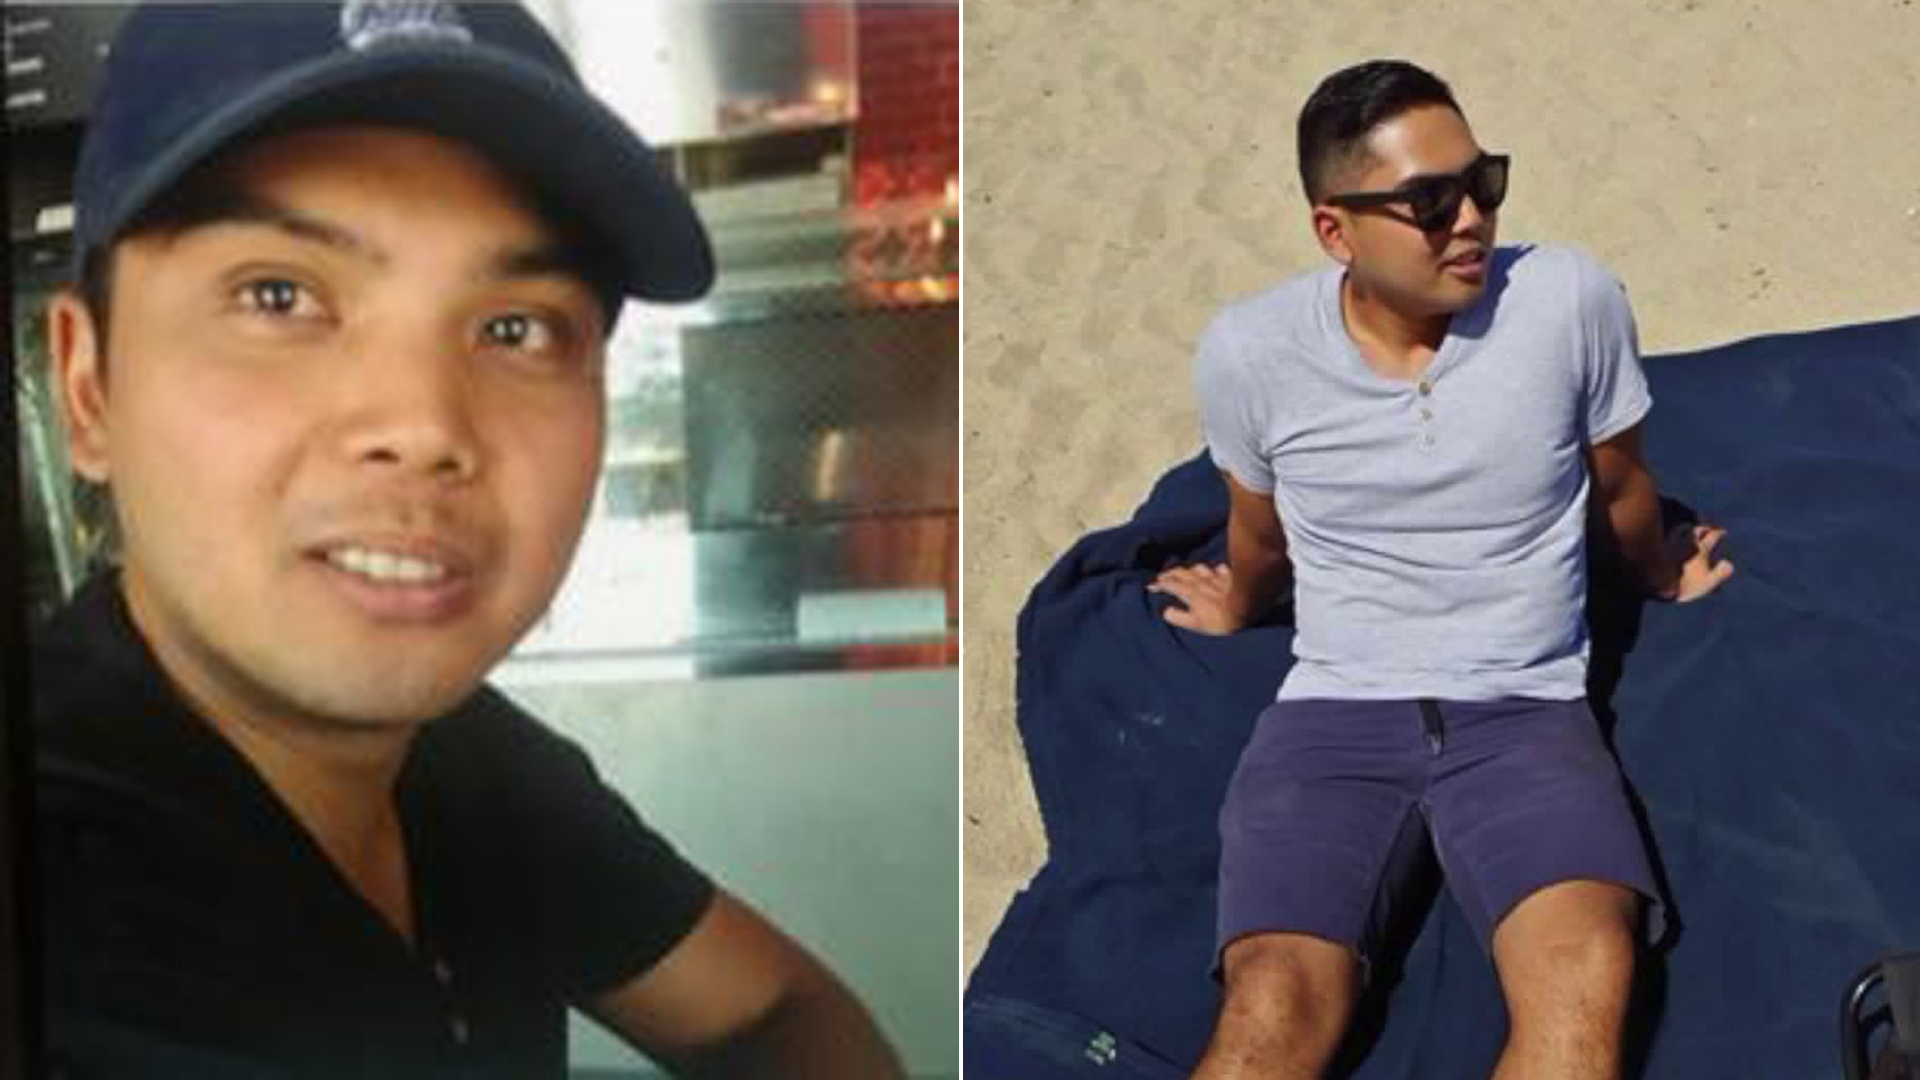 John Brian Mananghaya Aguila is seen in a photo released by police, left, and in one provided by his family to KTLA, right.